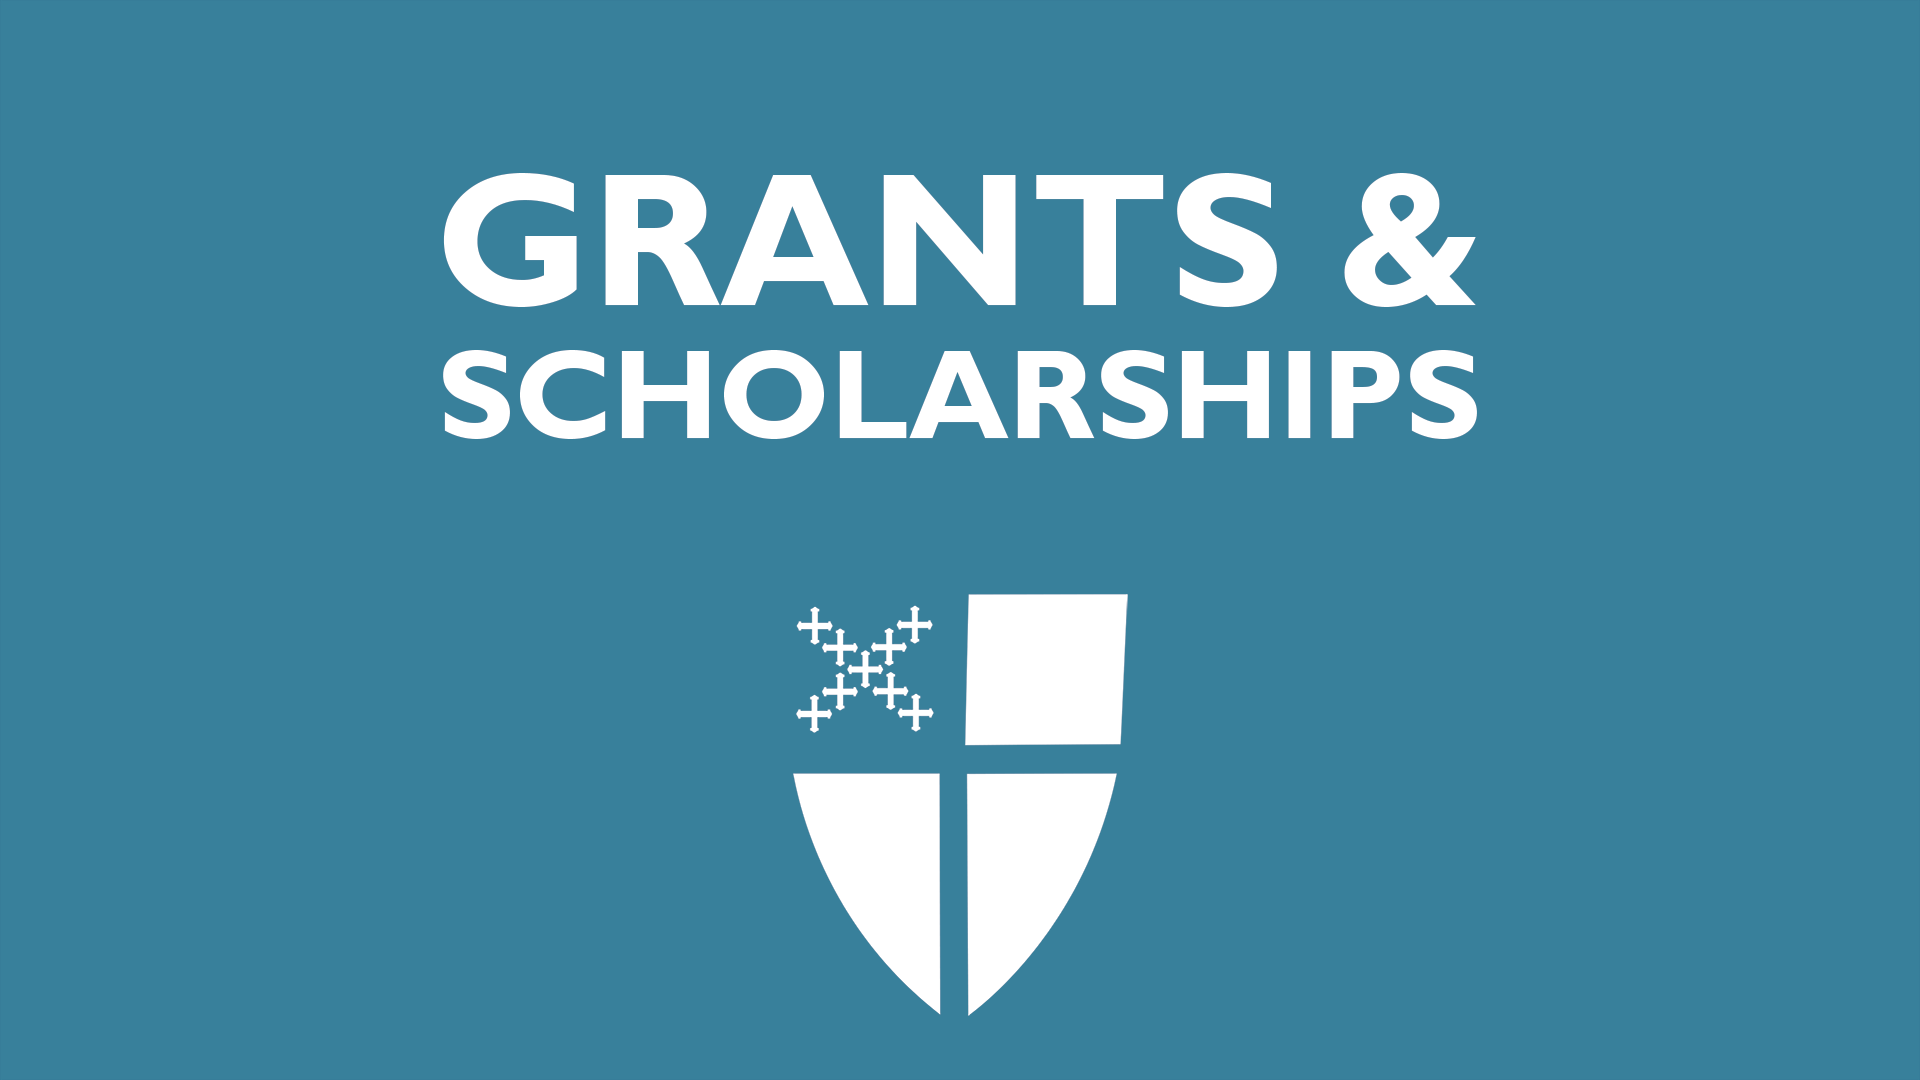 Episcopal Church scholarship applications for the 2021-2022 academic year are now accepted